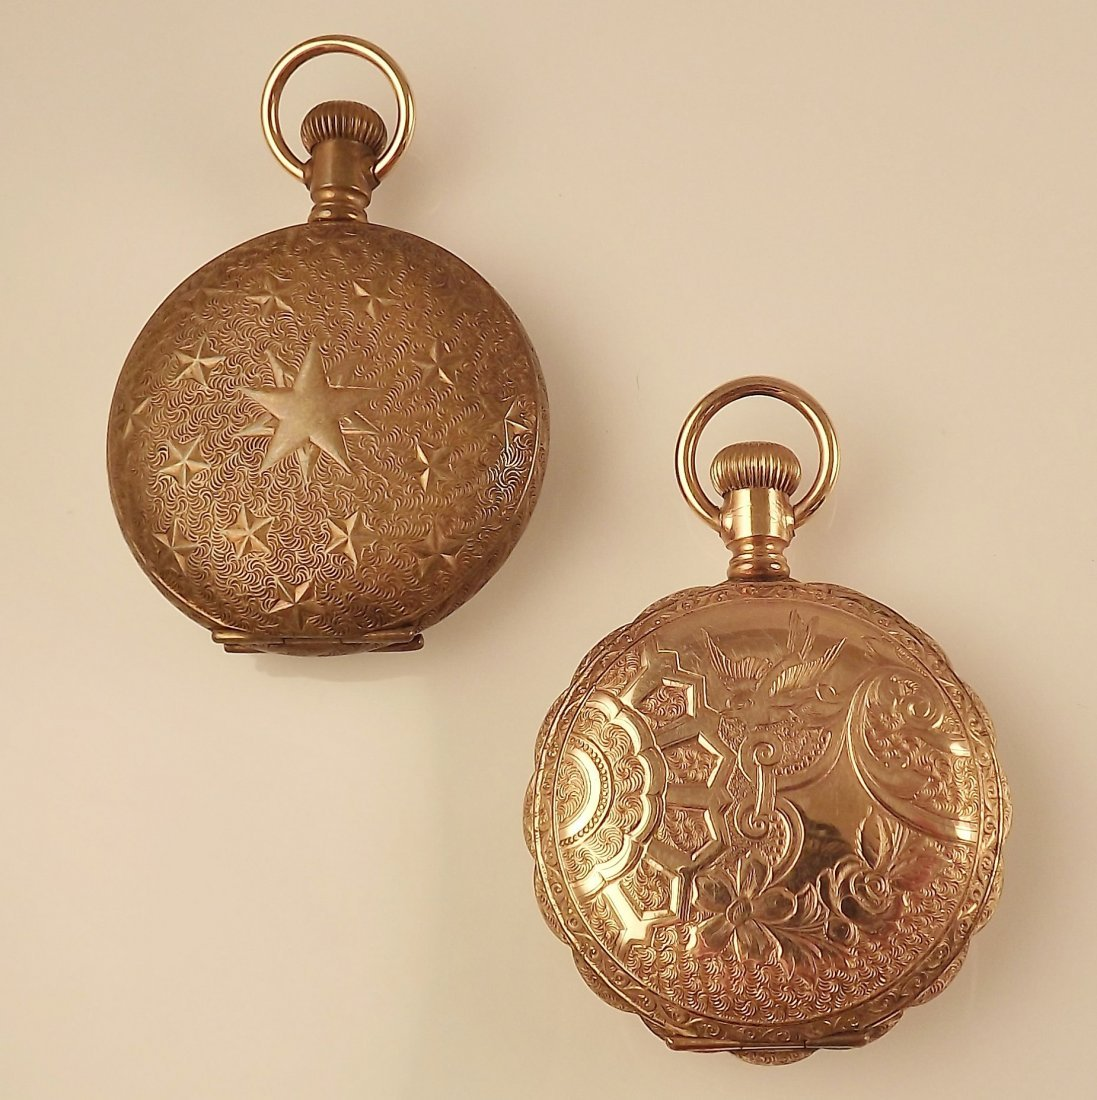 14K Elgin Pocket Watch Case and Tornado Pocket Watch